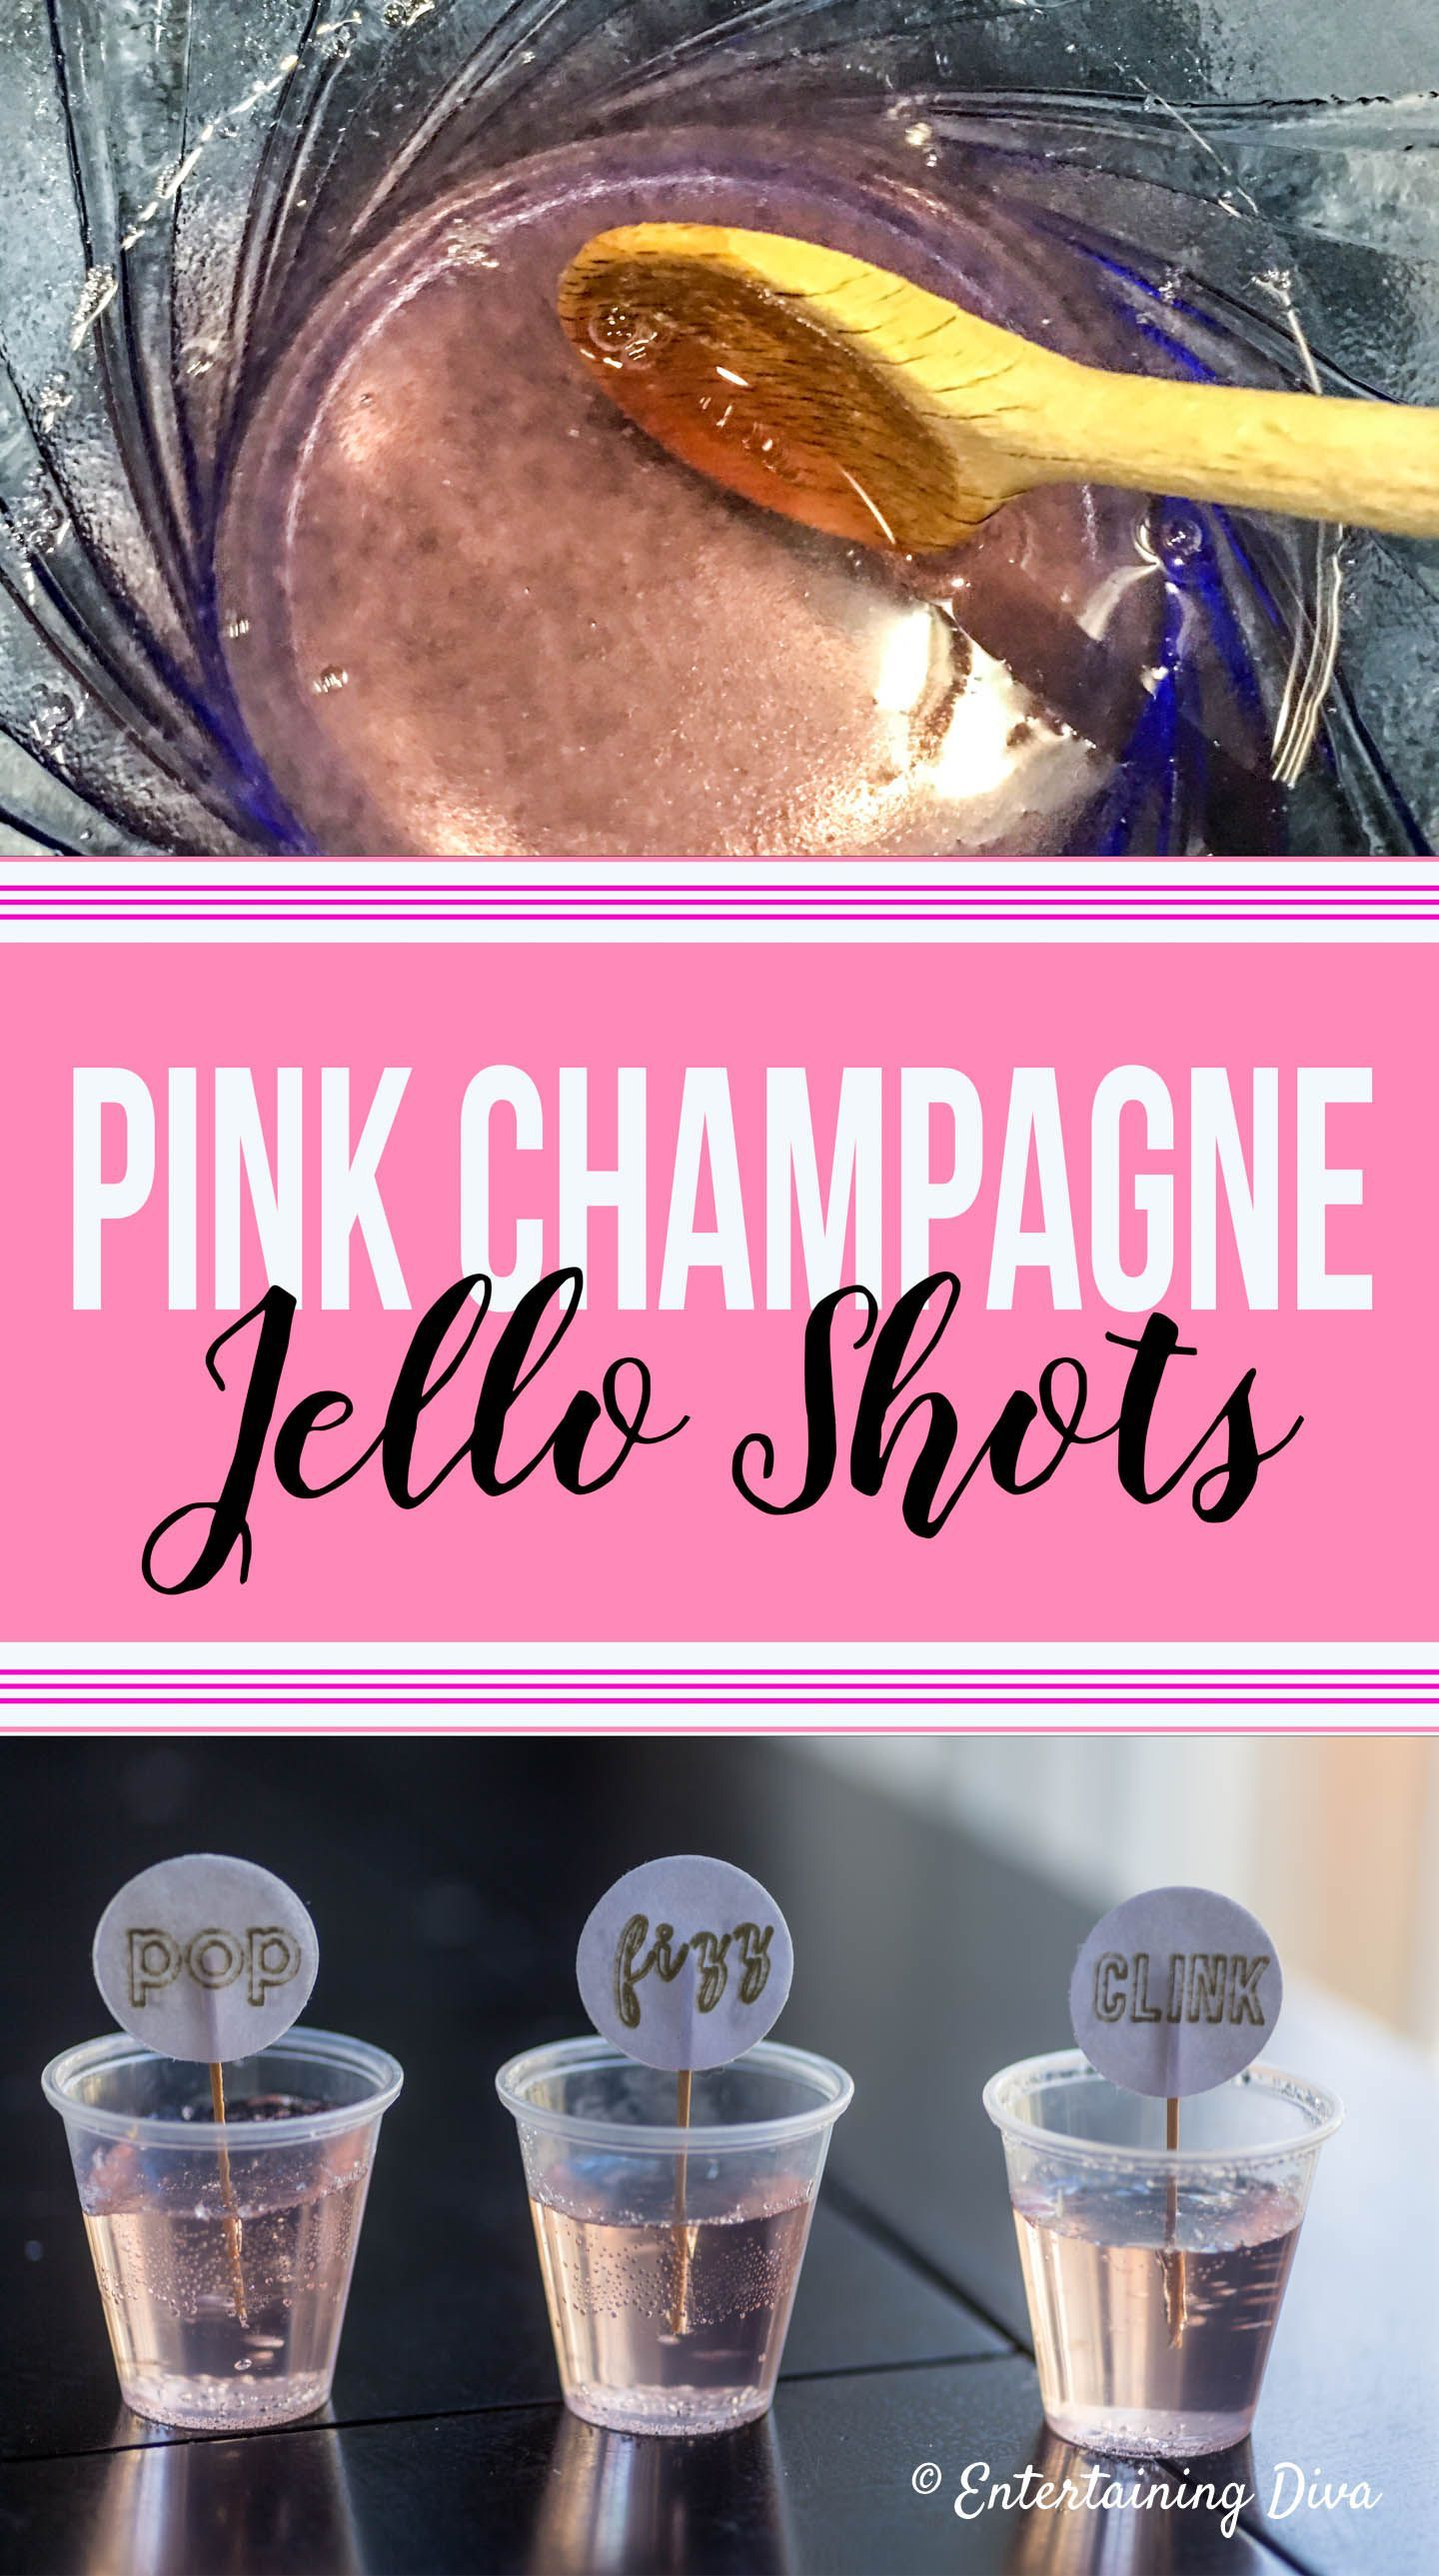 This pink champagne jello shots recipe is to so easy to make. It's made with white cran strawberry juice and sparkling wine and tastes awesome! Perfect for a birthday party, bachelorette party or Galentine's party! #fromhousetohome #newyearseve #champagne #partyideas #jelloshots #holidaysandevents #bachelorettepartyideas